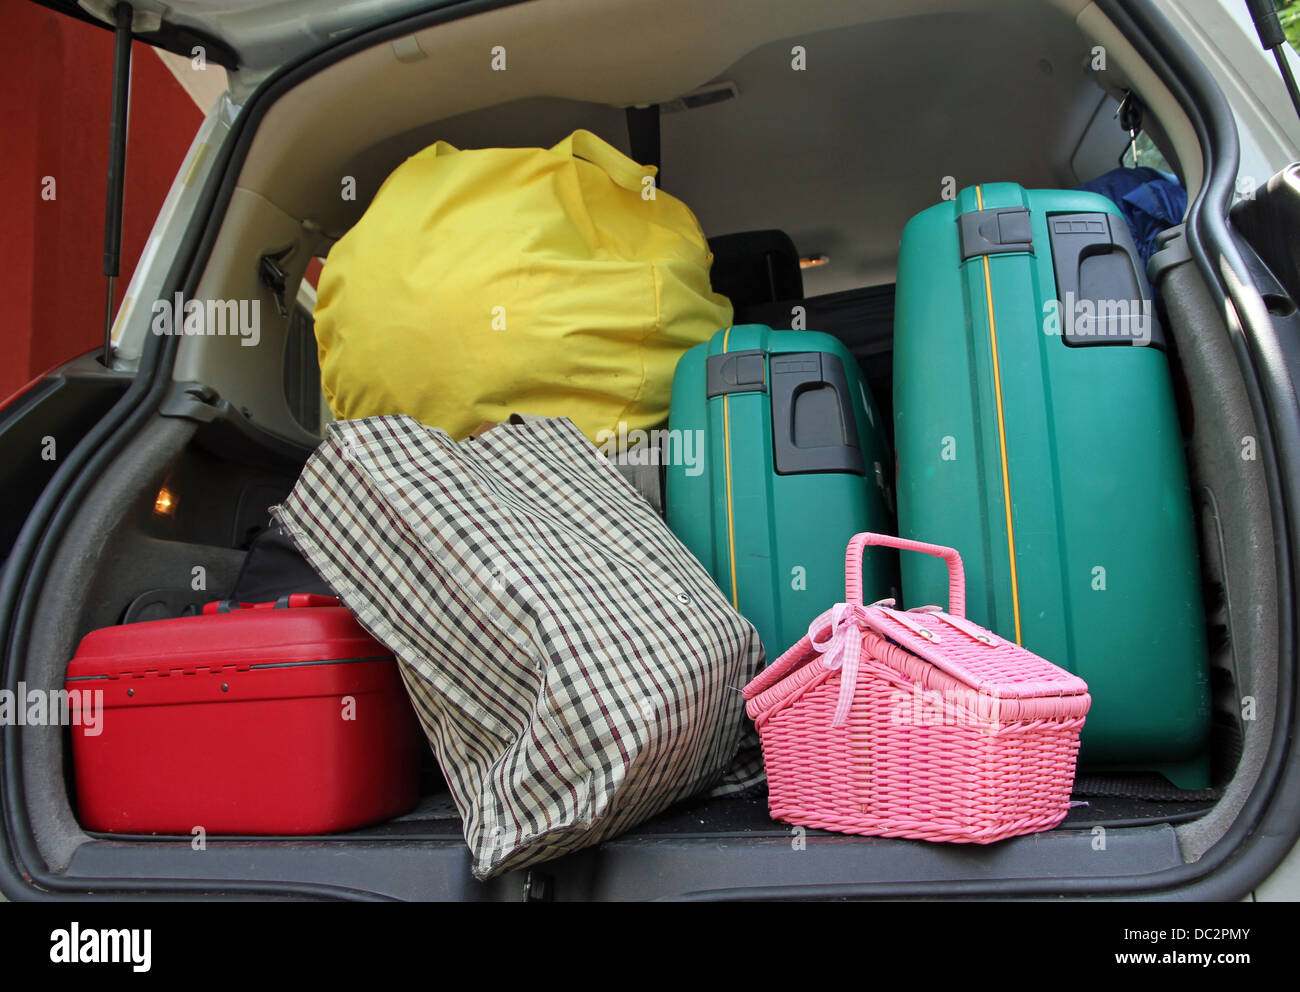 two green suitcase and a pink trash bag in the trunk of the family car ready for the holidays - Stock Image